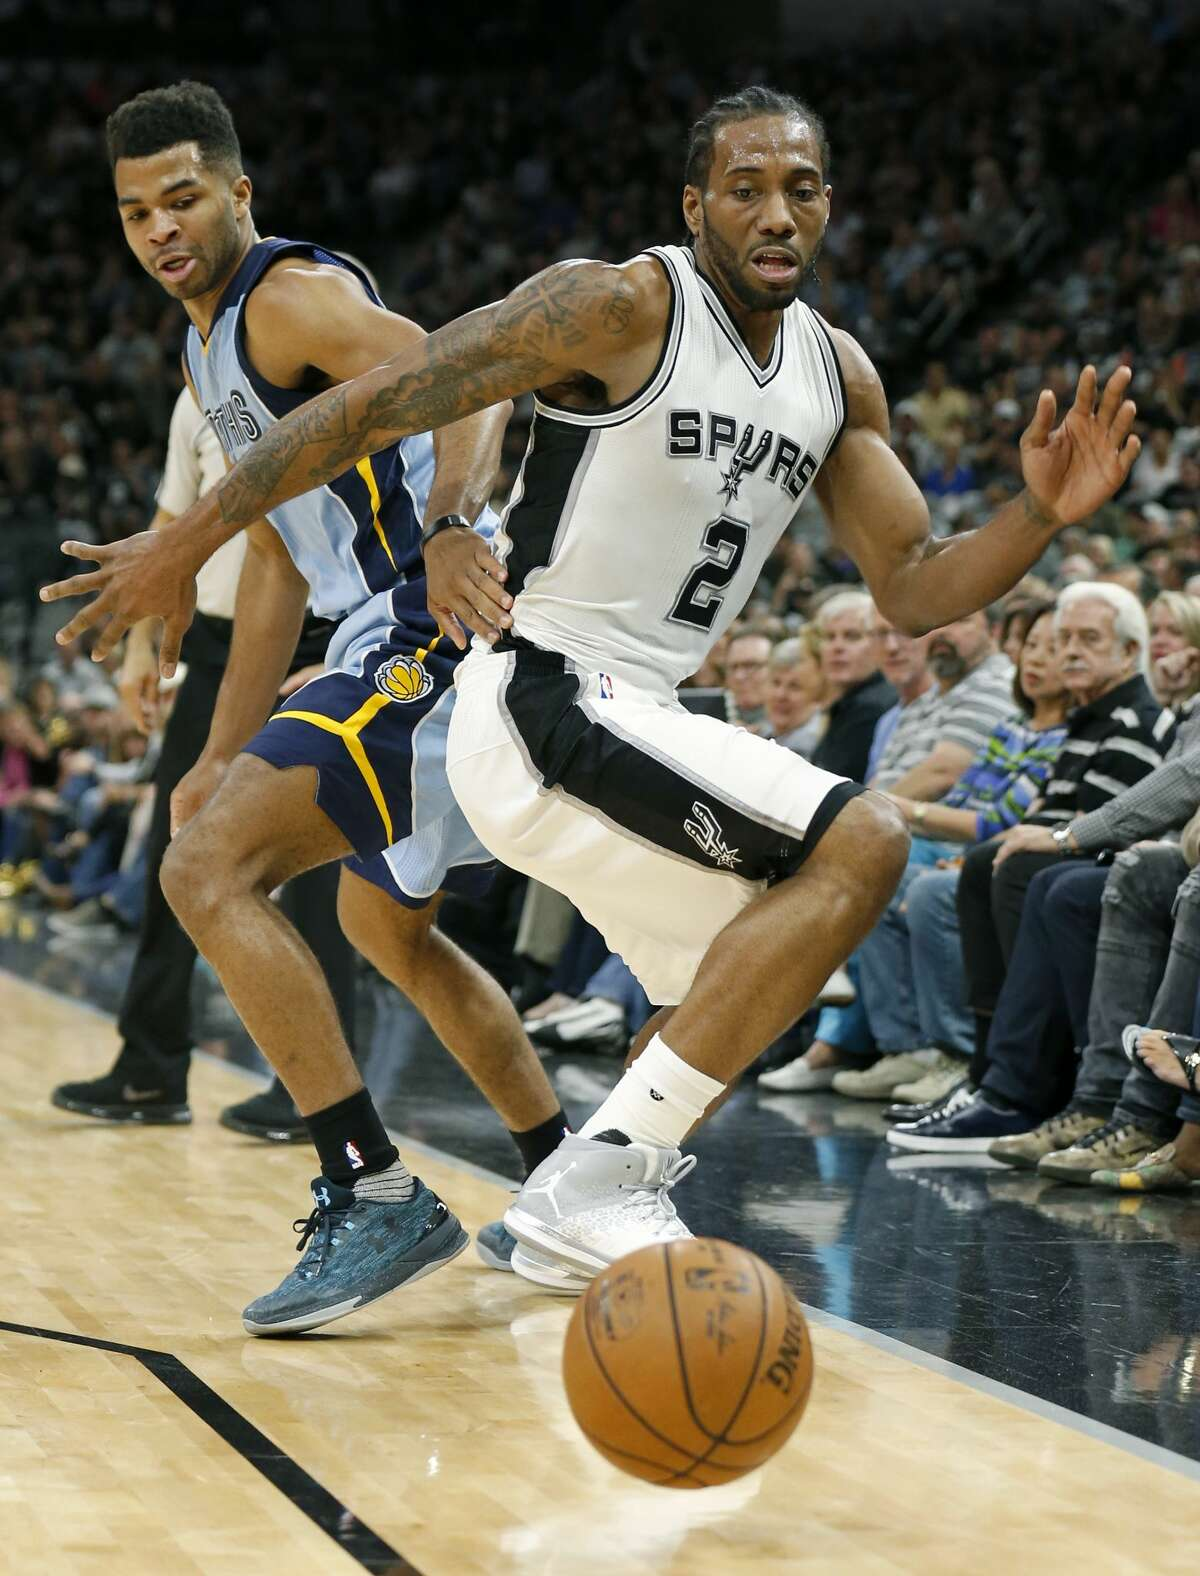 Memphis Grizzlies?• Andrew Harrison and San Antonio Spurs' Kawhi Leonard chase after a loose ball during first half action of Game 2 in the first round of the Western Conference playoffs held Monday April 17, 2017 at the AT&T Center.